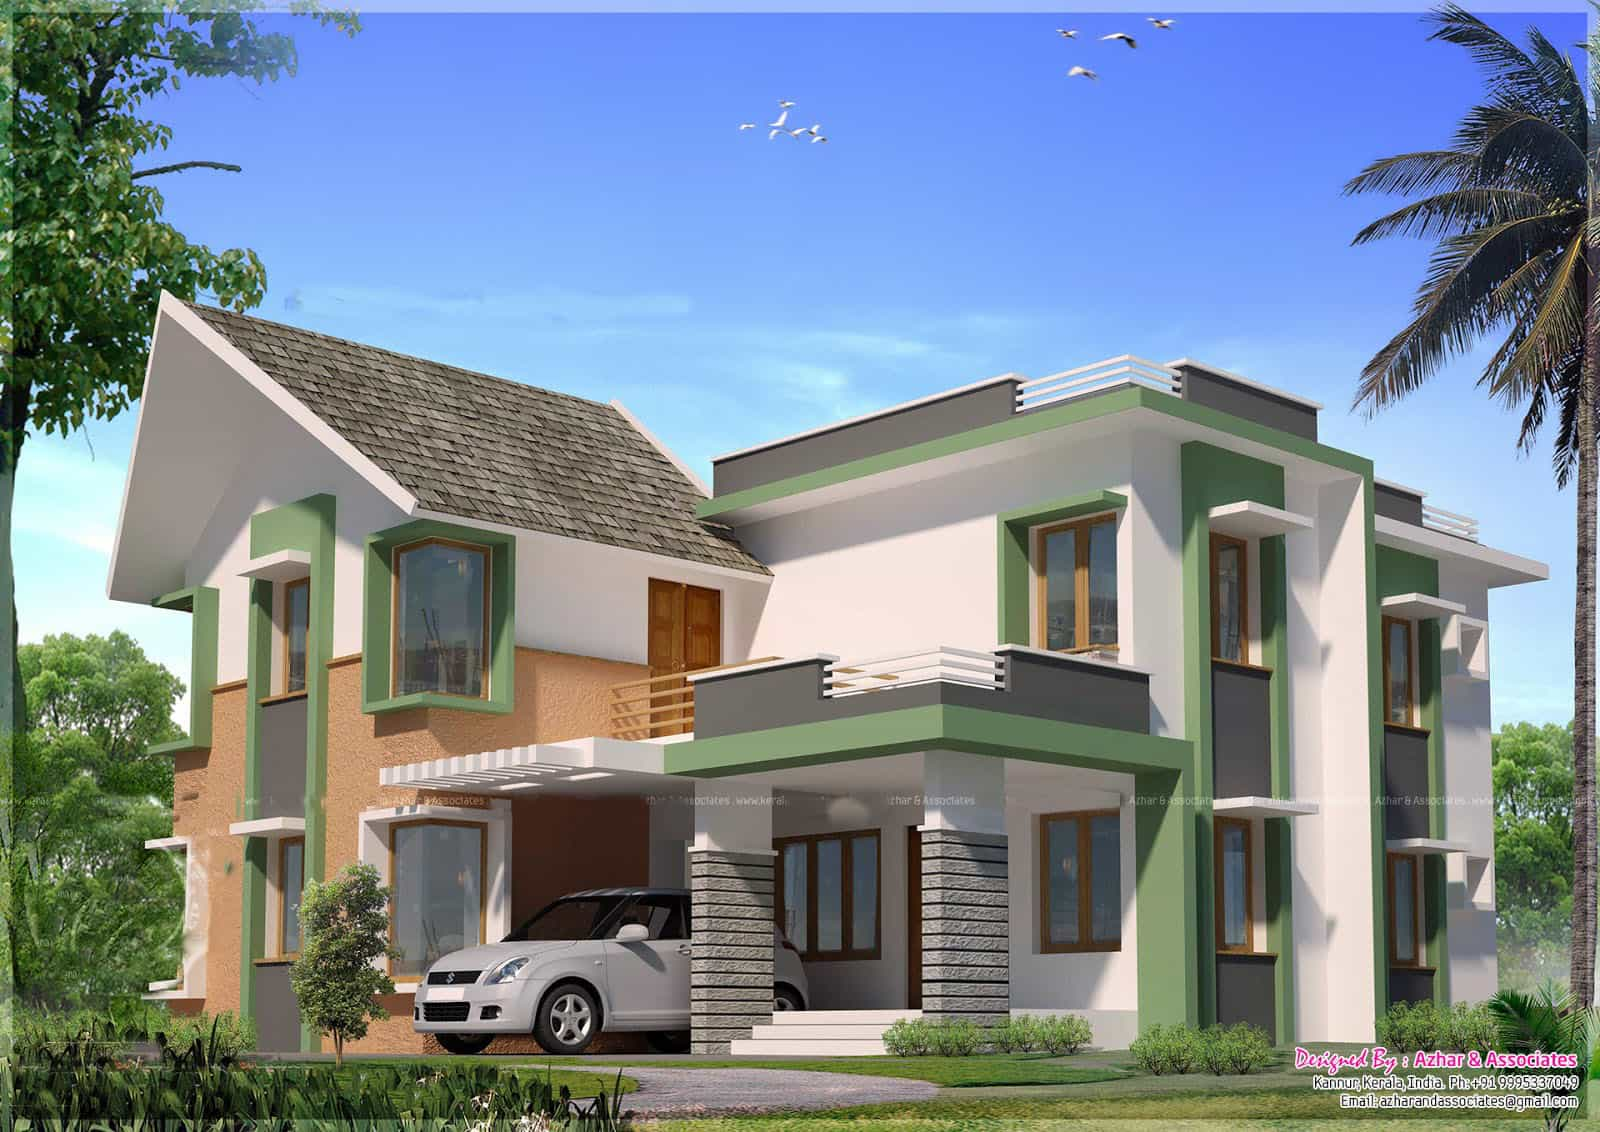 Kerala house plans with estimate for a 2900 home design - Kerala exterior model homes ...